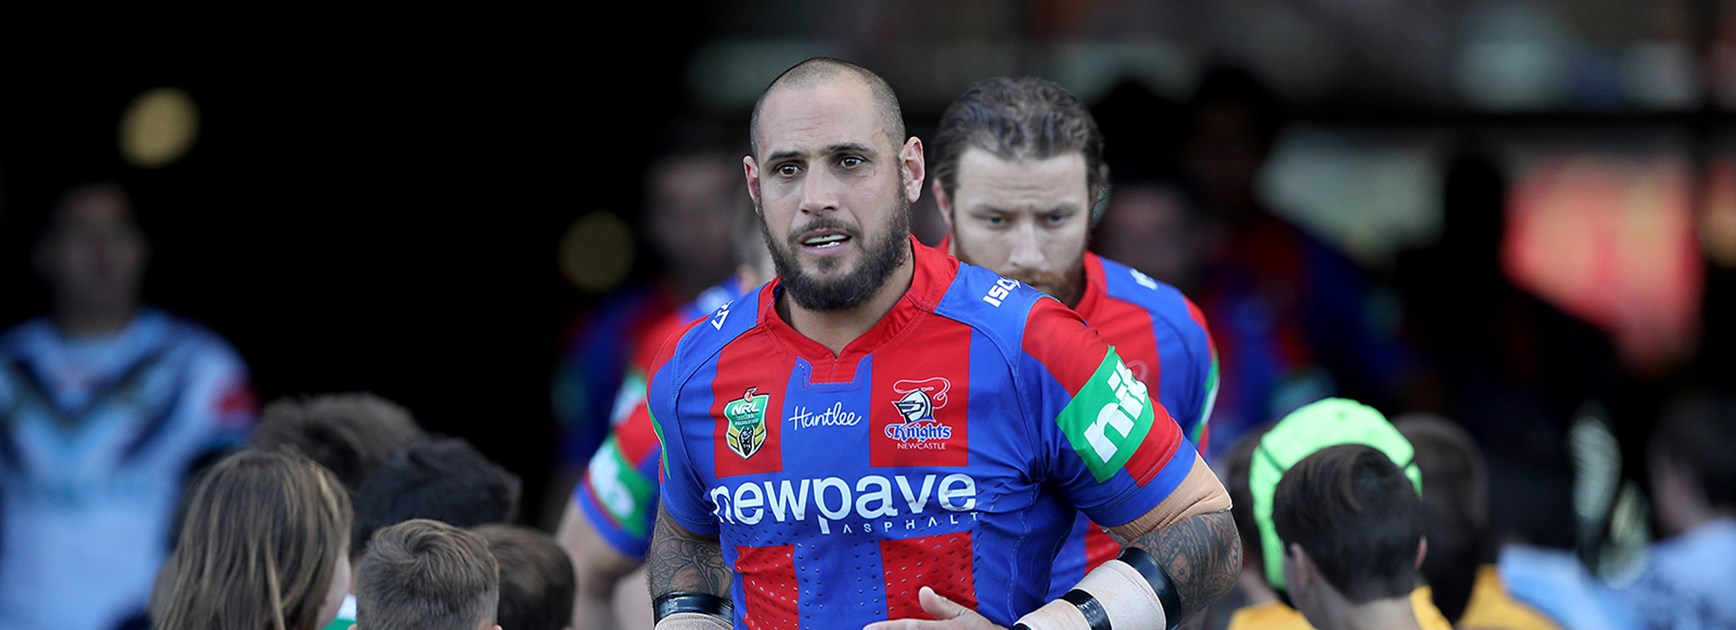 Newcastle Knights veteran Jeremy Smith will retire from rugby league at the end of the 2016 season.